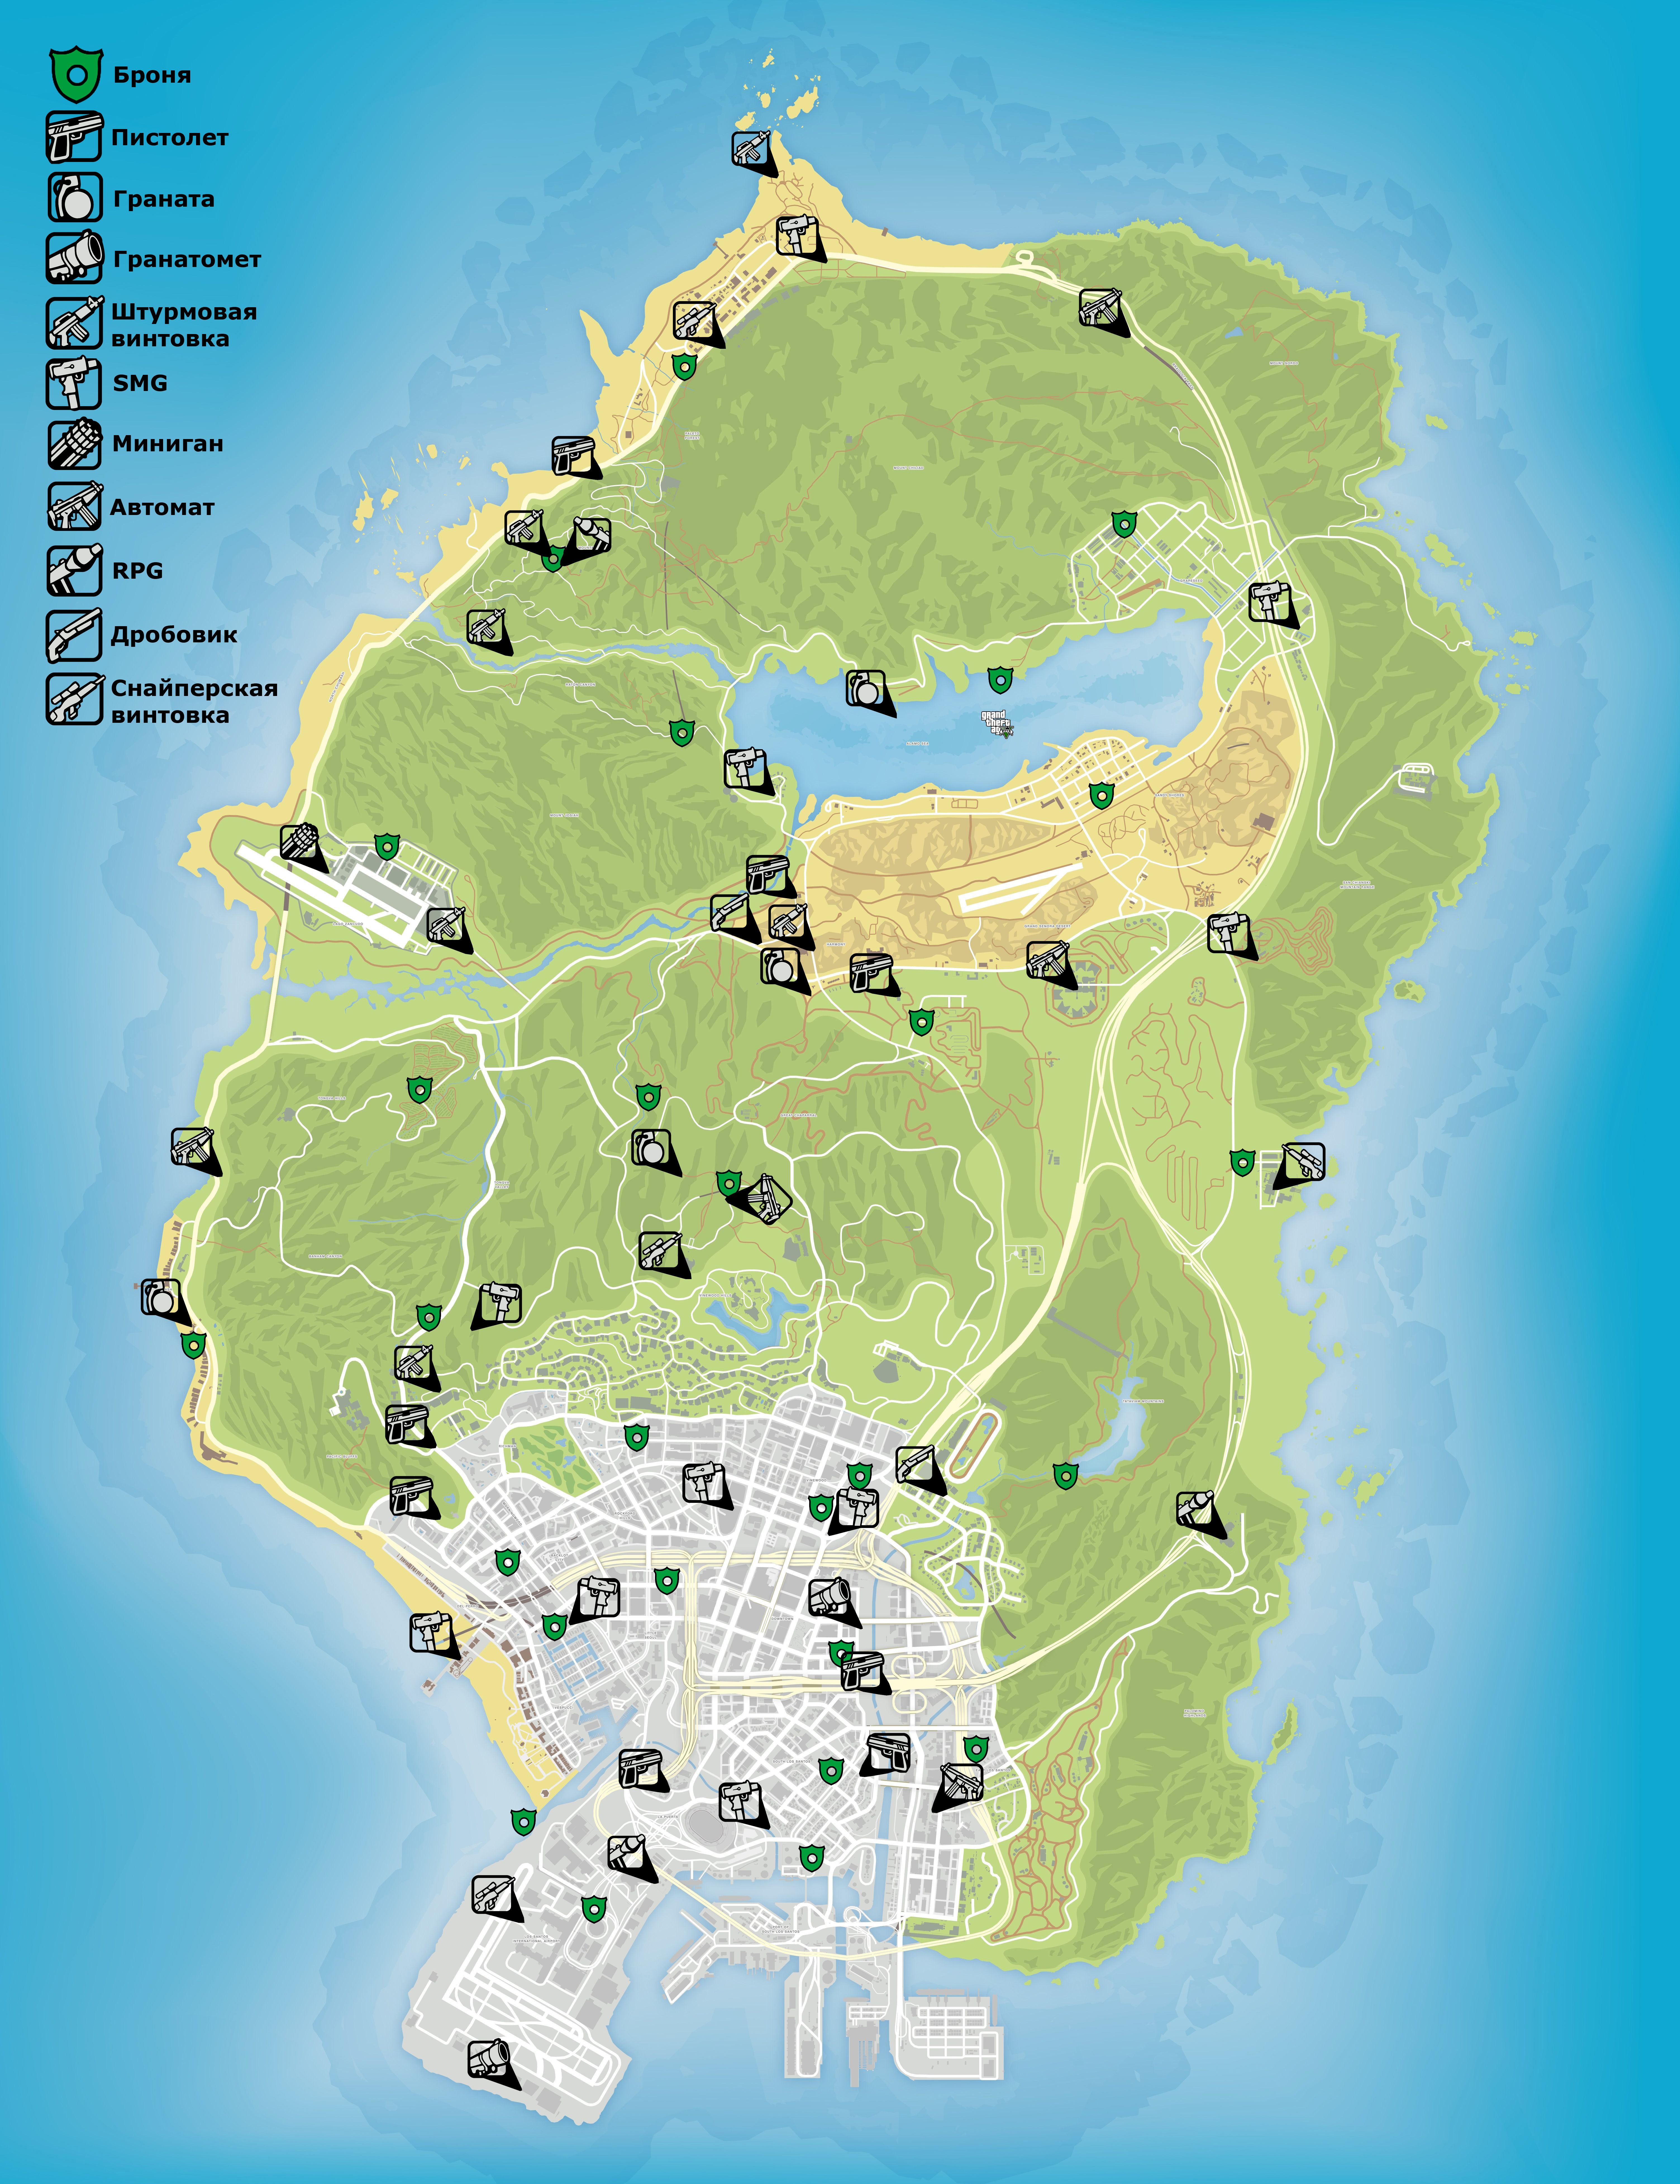 gta helicopter locations with Secret Weapon Locations Gta 5 on  in addition Dayz 0 60 Map Changes Preview moreover Gta 5s Online Mode Adds New Car And Maps moreover Gta 5 Buzzard besides 3035 16.